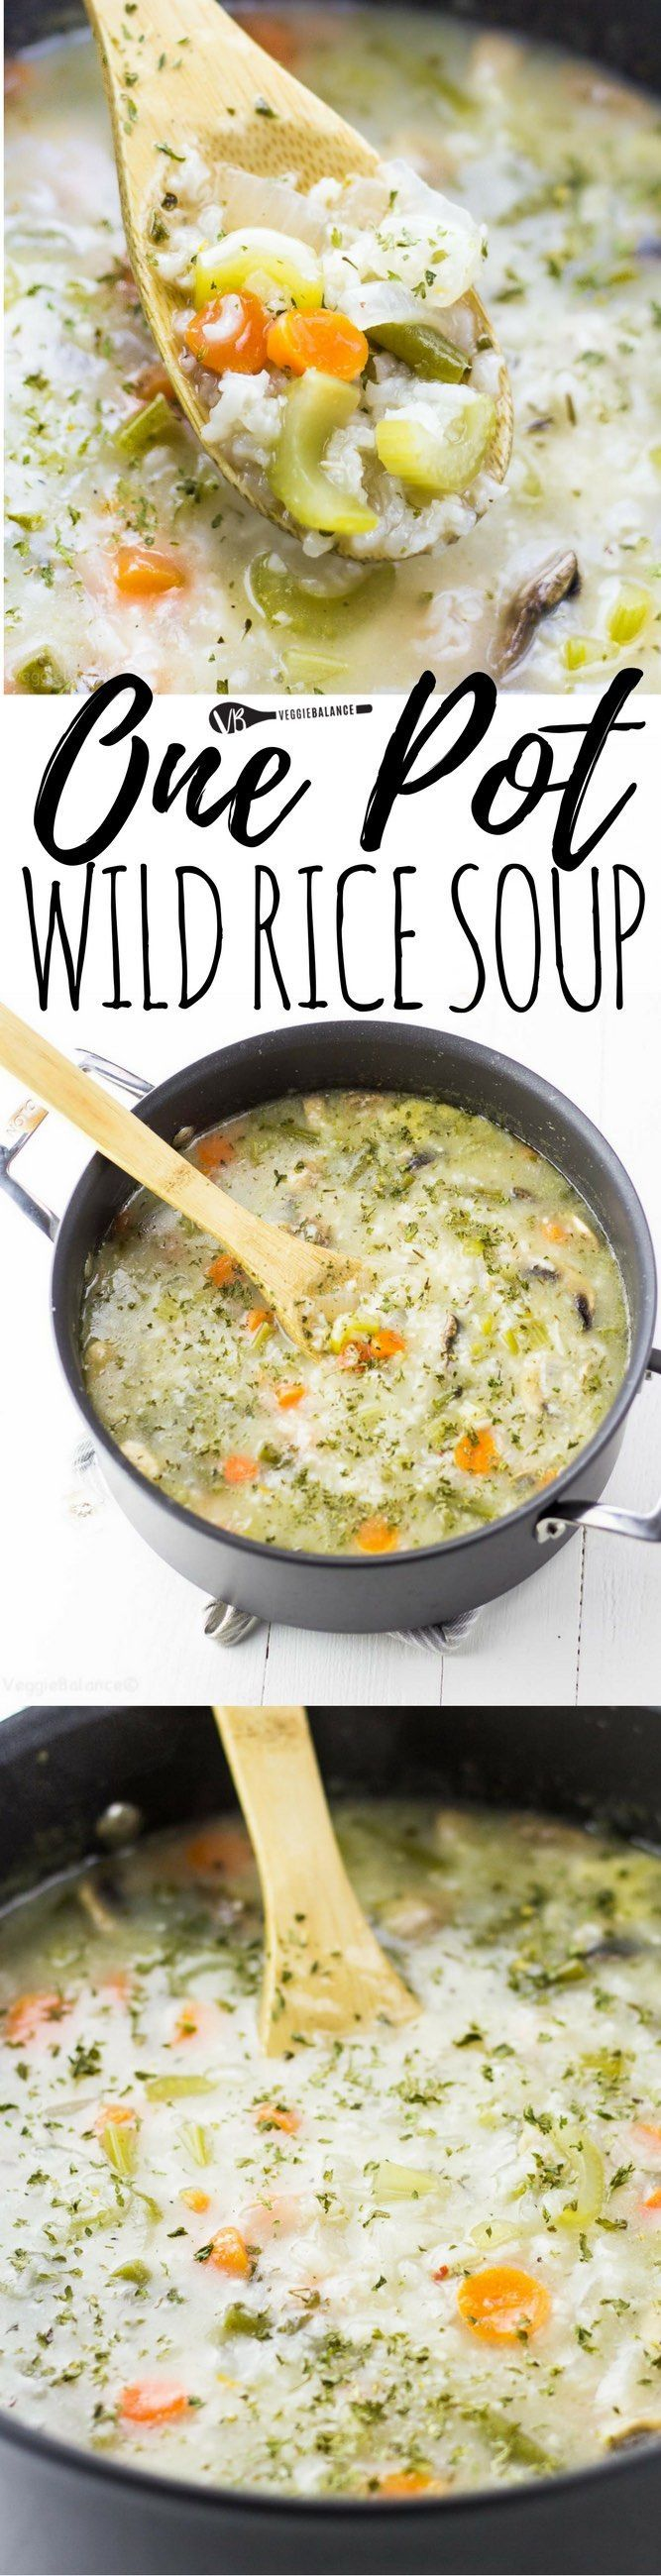 Wild Rice Soup made in One Pot for a quick, filling and delicious dinner. A few simple ingredients, flavorful spices and ready under 30 minutes. Easily made as a vegetarian option and as always gluten-free. (Gluten Free, Dairy Free, Vegan Friendly)